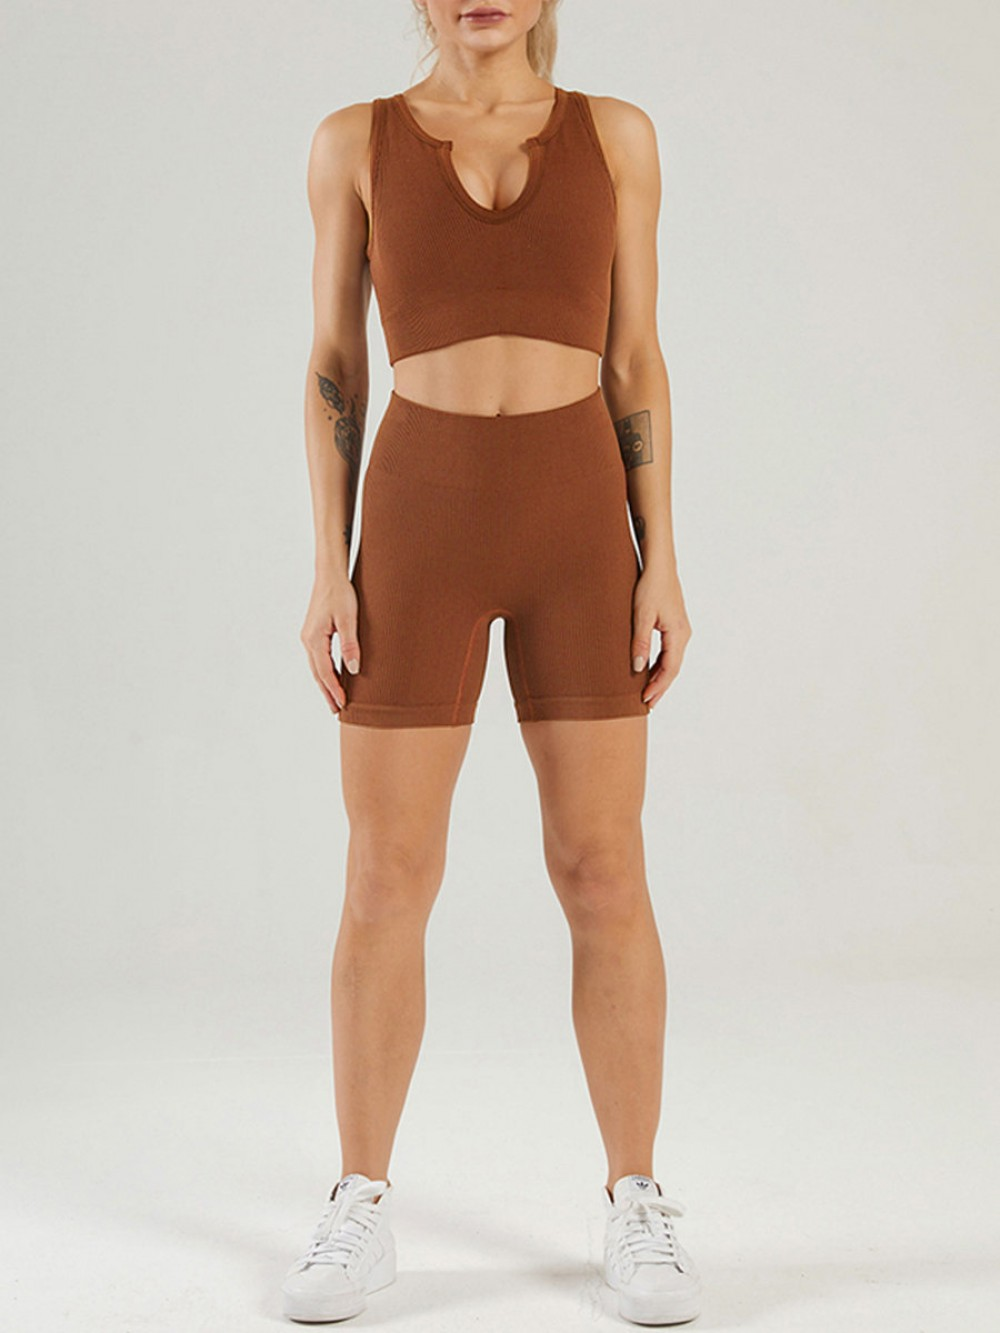 Dark Brown Low Neck Sports Bra And Seamless Shorts Set Stretchy